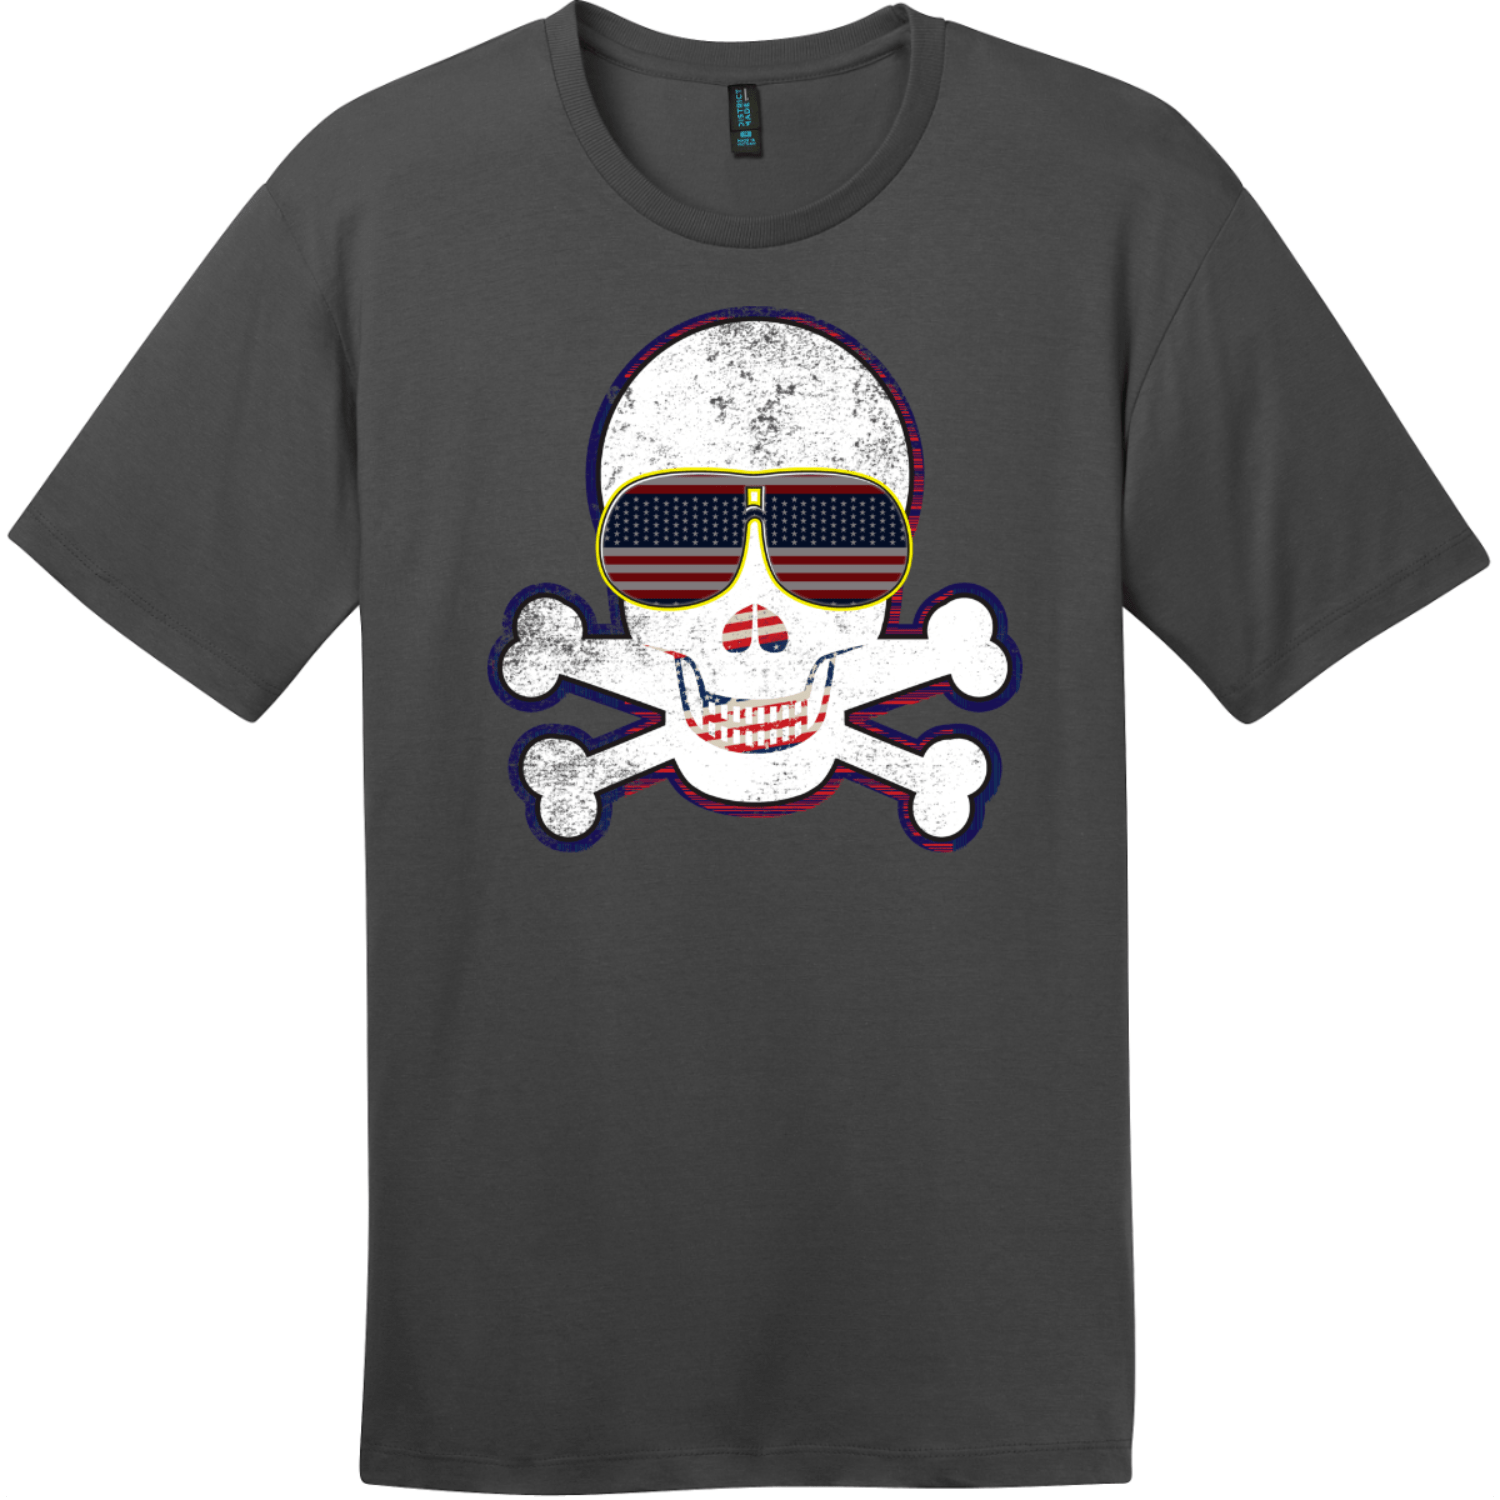 American Flag Sunglasses Retro Skull T-Shirt Charcoal District Perfect Weight Tee DT104